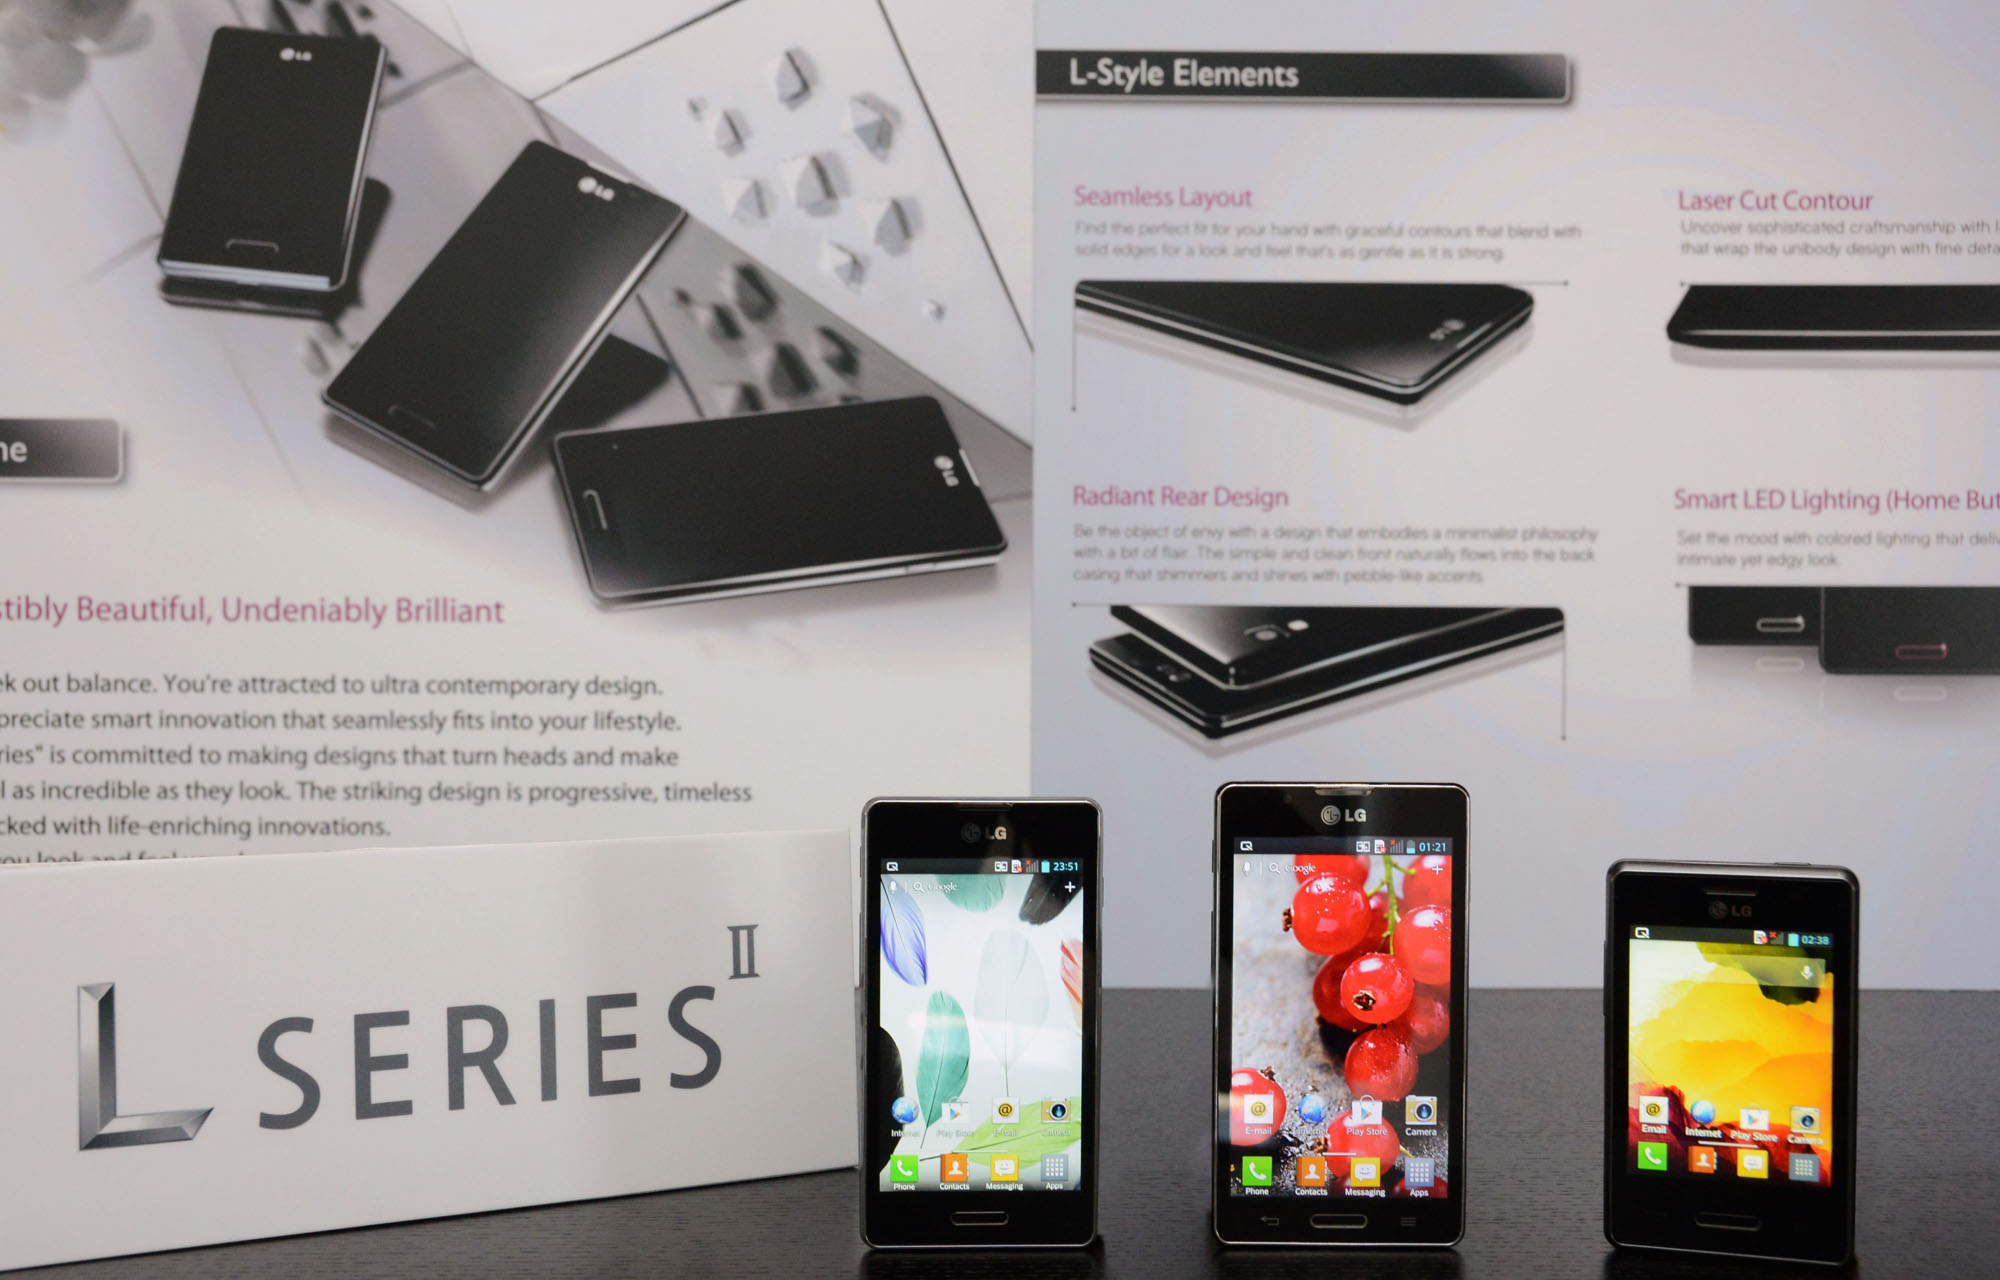 Optimus L SeriesII smartphones displayed on a table.